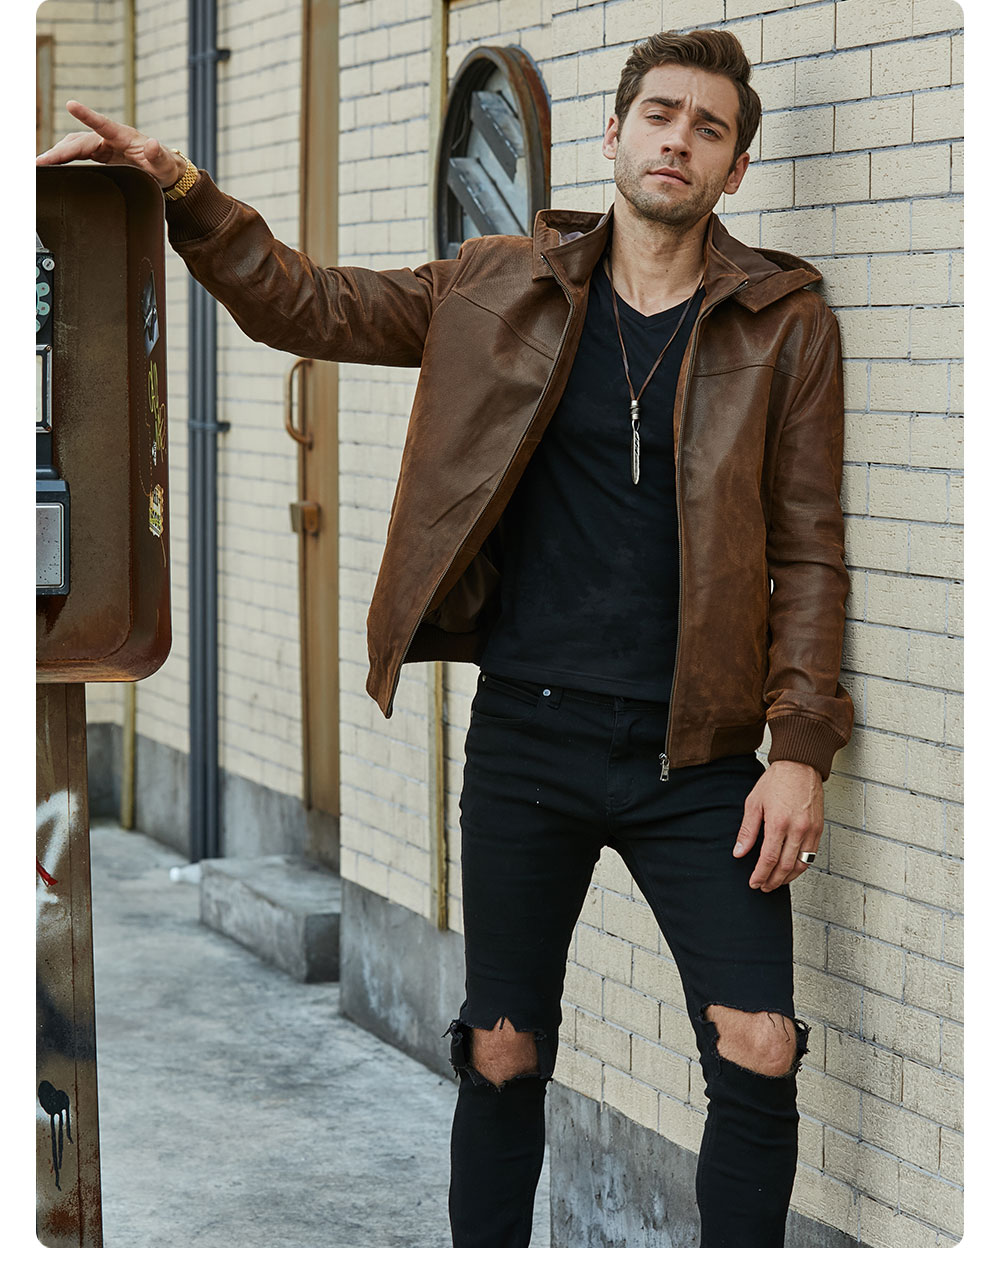 H3392fd9ded8e439d8a424e2ebe79098c9 New Men's Winter Jacket Made Of Genuine Pigskin Leather With A Hood, Pigskin Motorcycle Jacket, Natural Leather Jacket